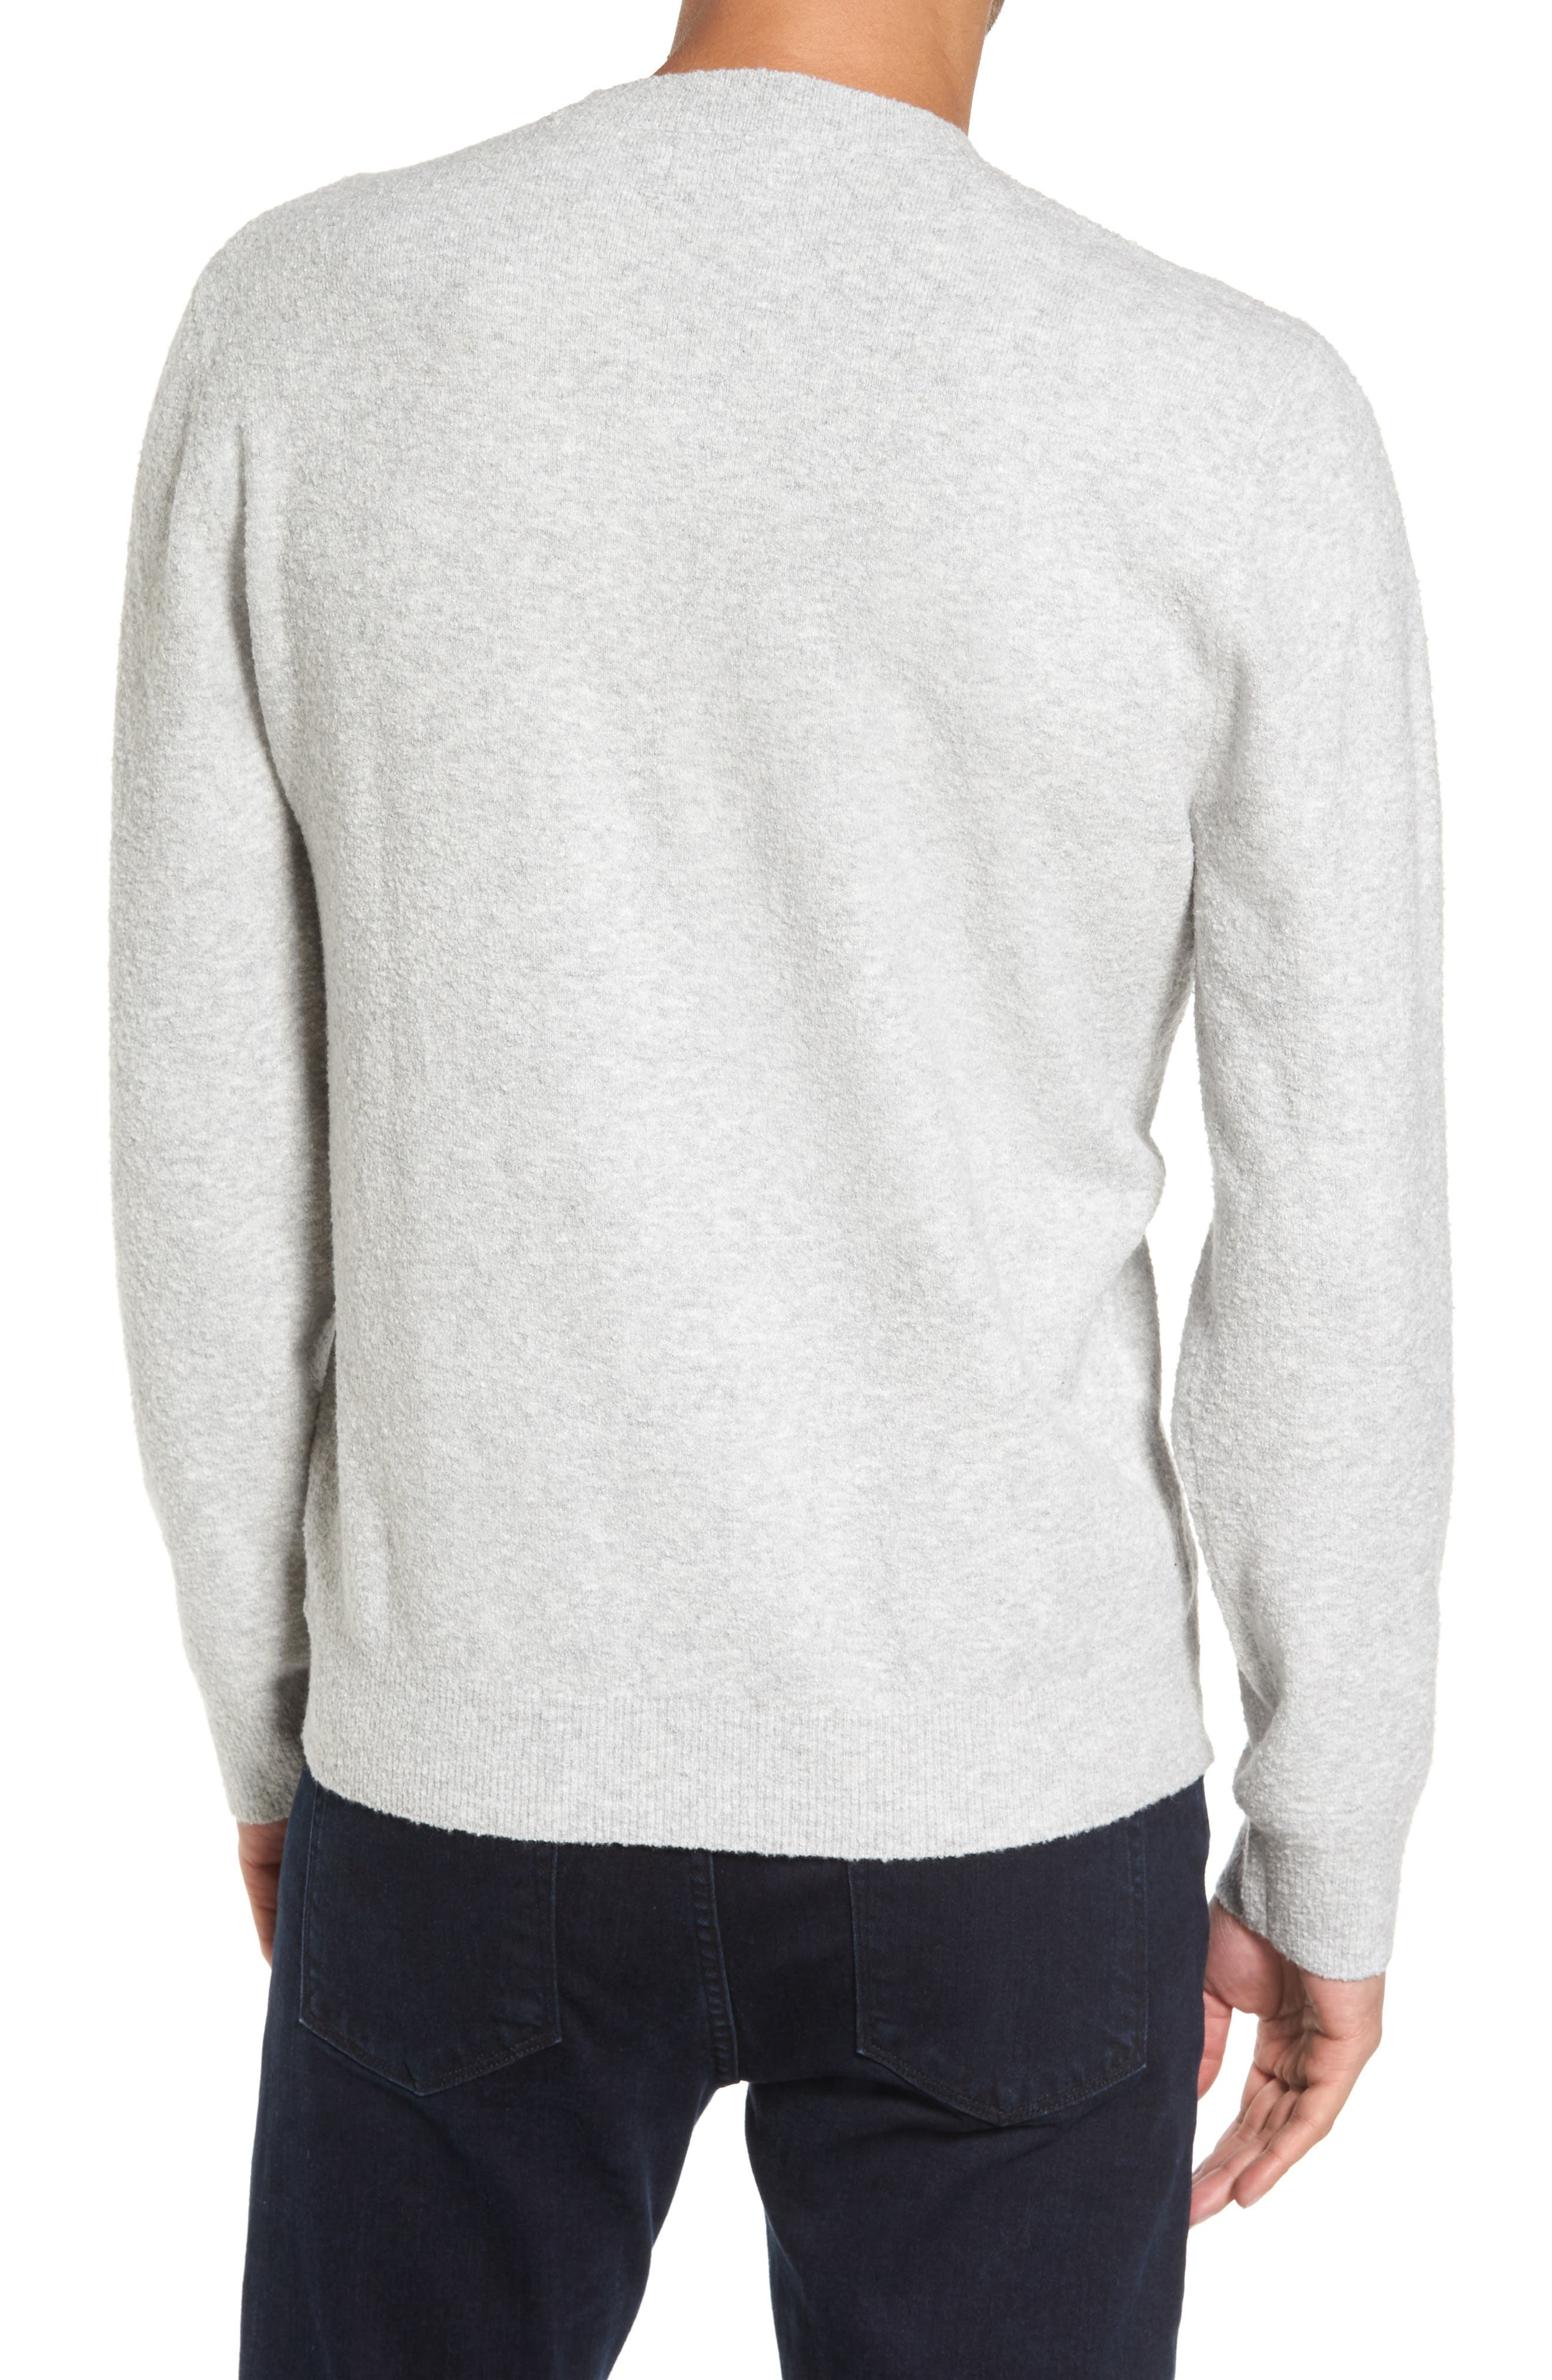 Nathaniel Classic Fit Sweater,                             Alternate thumbnail 2, color,                             Lunar Surface